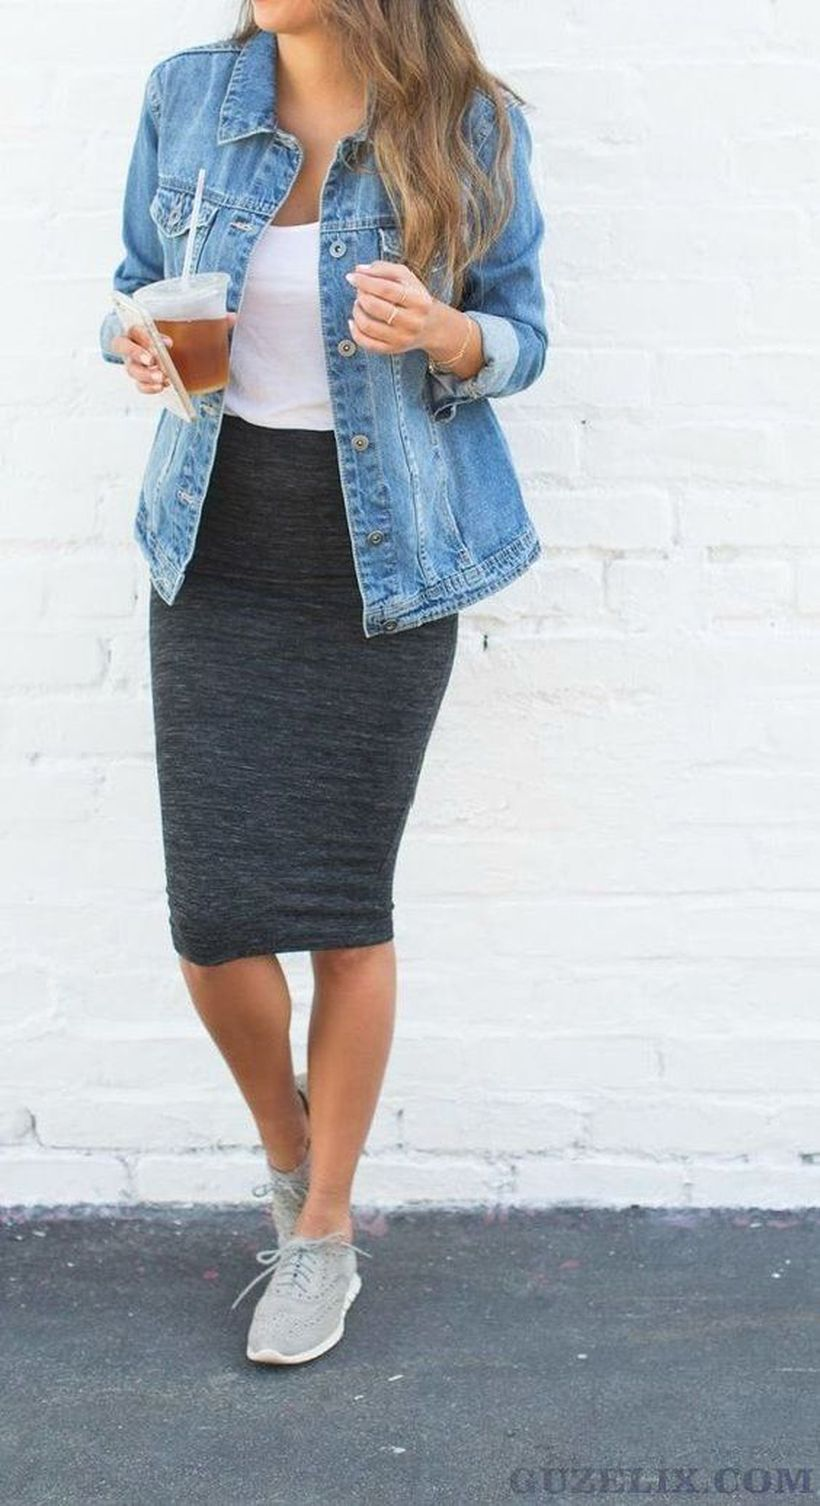 Fashionable skirt outfits ideas that you must try 14